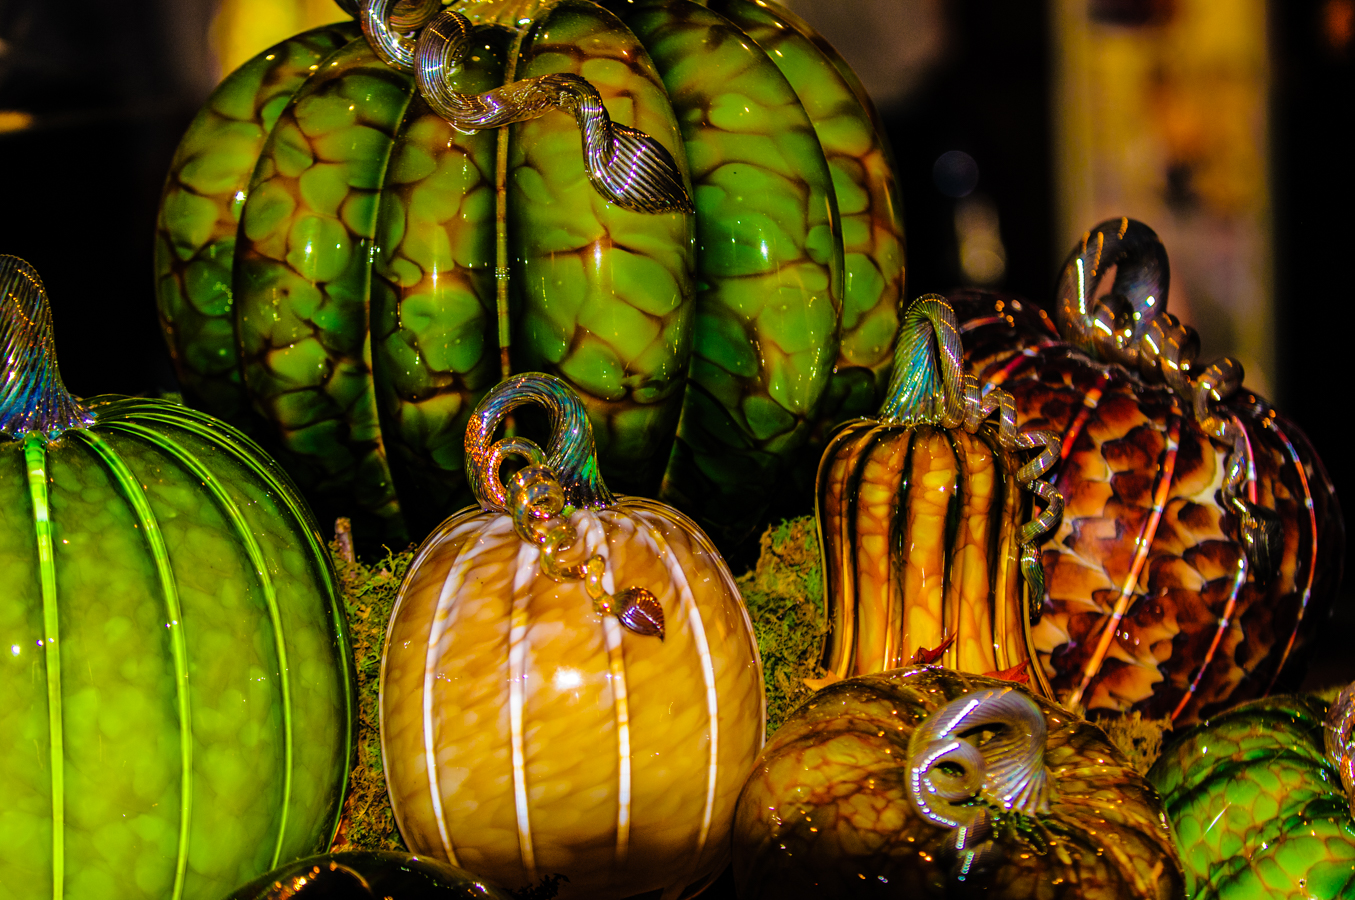 pumpkins-photos-3779